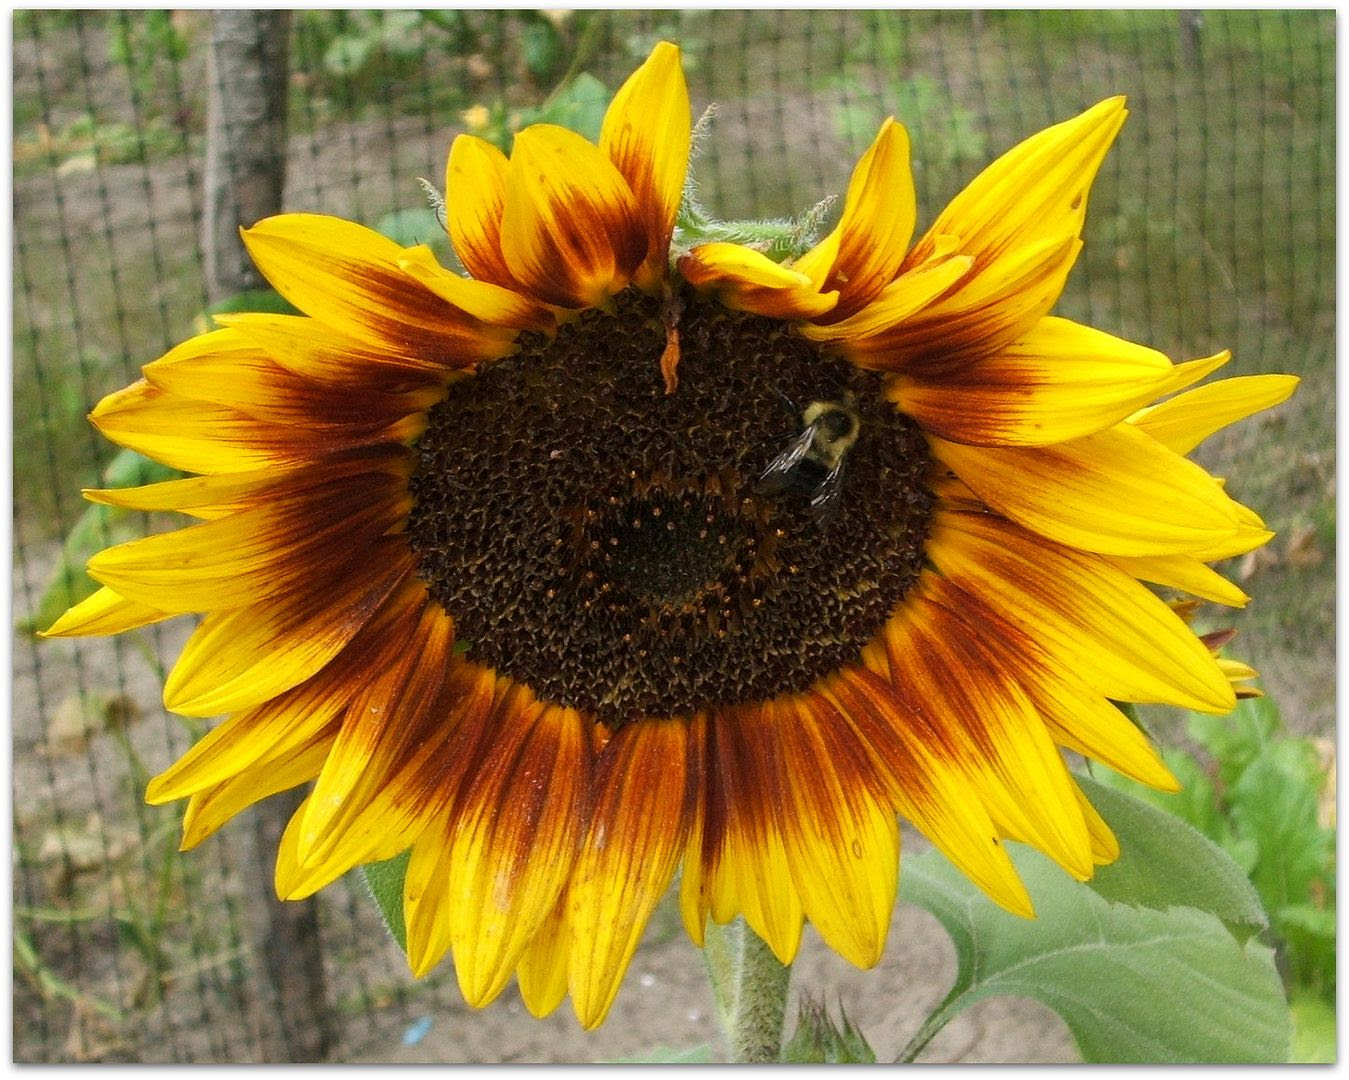 by Angie Ouellette-Tower for http://www.godsgrowinggarden.com/ photo DSCF9069_zpsyxaqyqdl.jpg